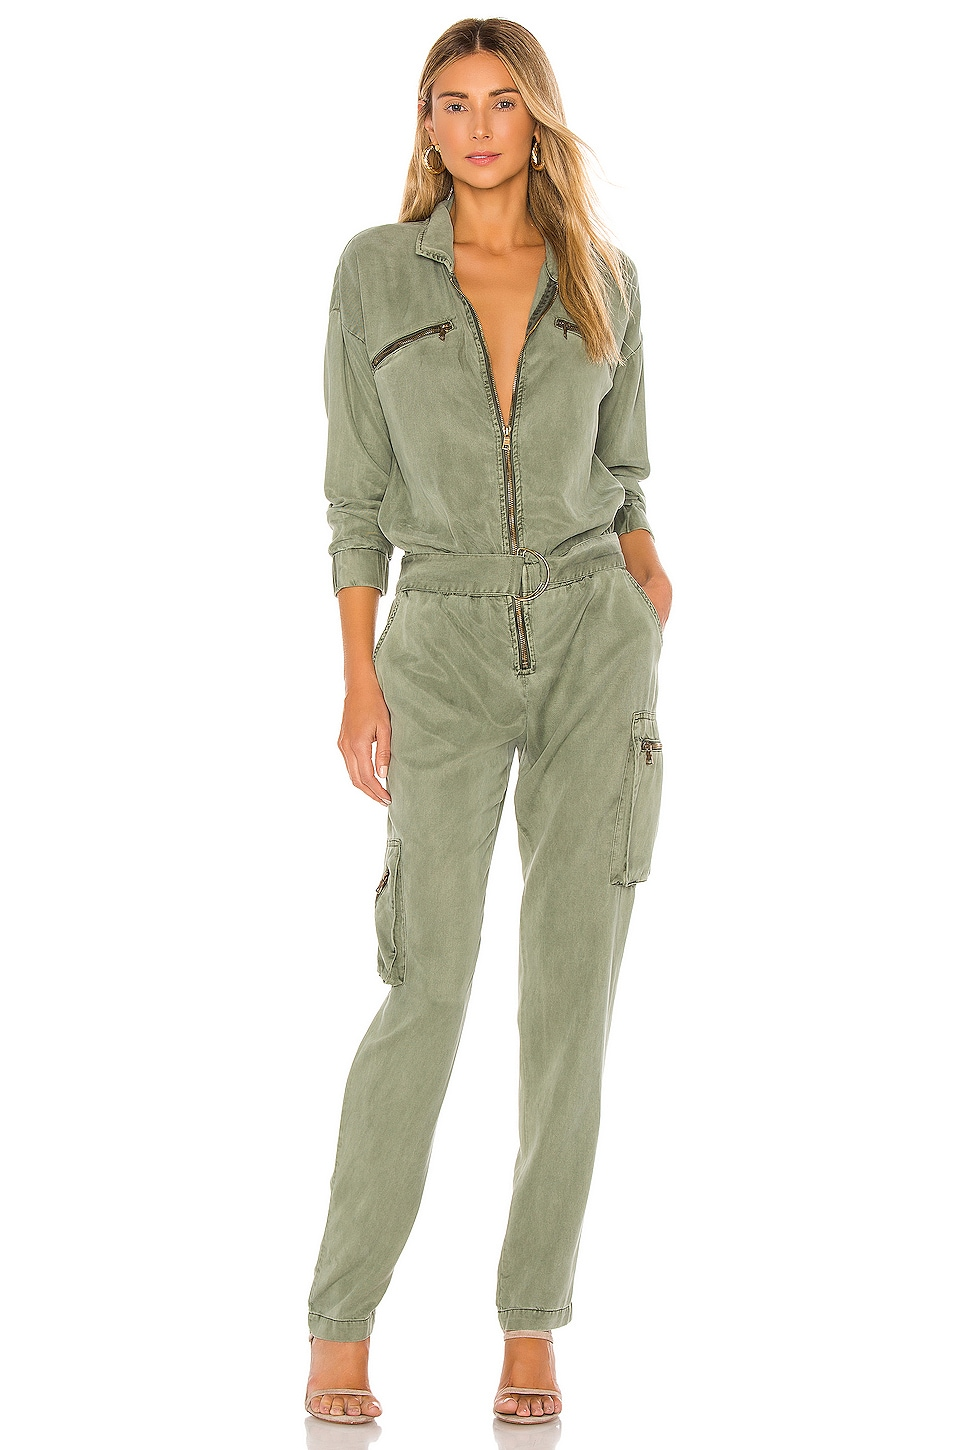 YFB CLOTHING x REVOLVE Valencia Jumpsuit